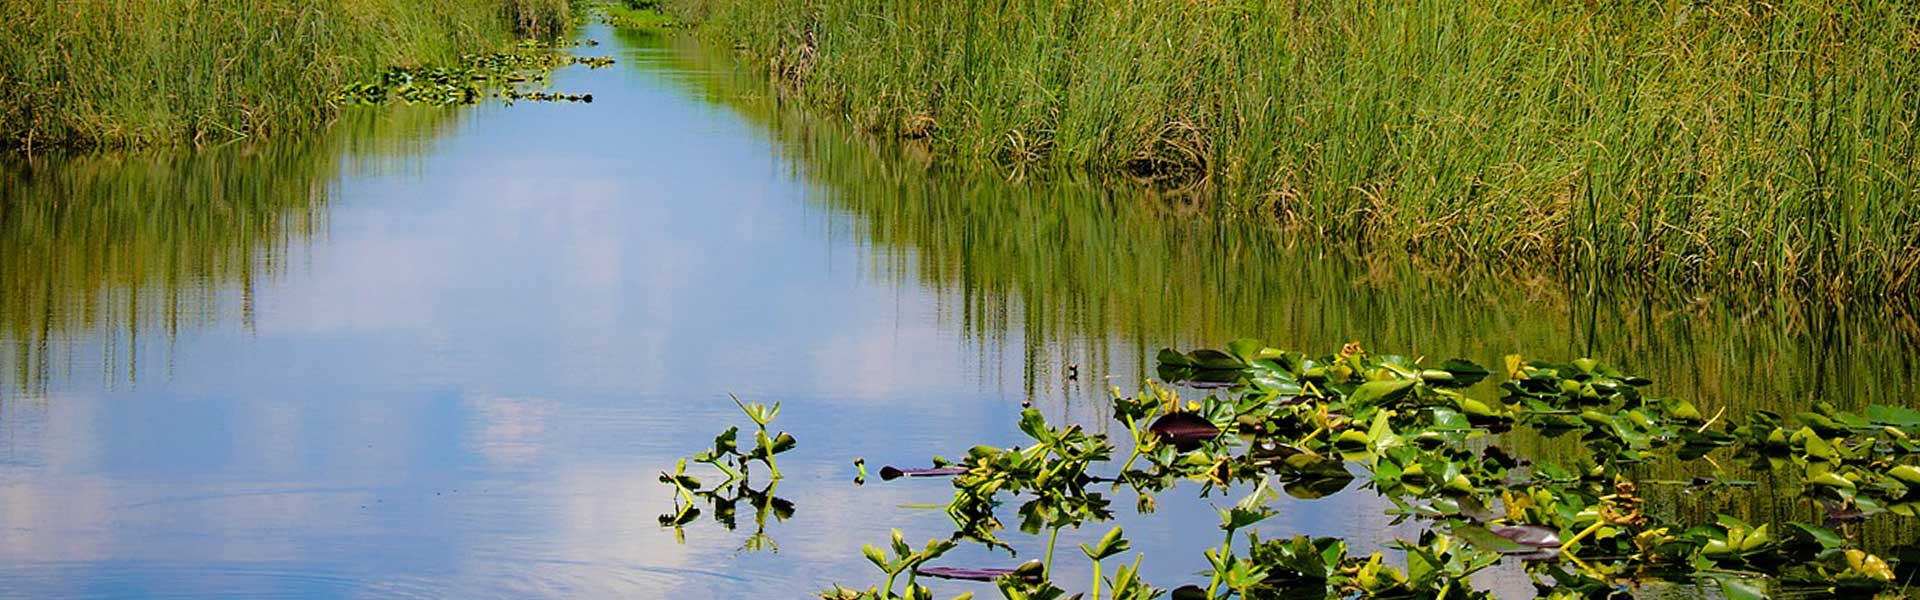 View of sawgrass and waterways in the Florida Everglades